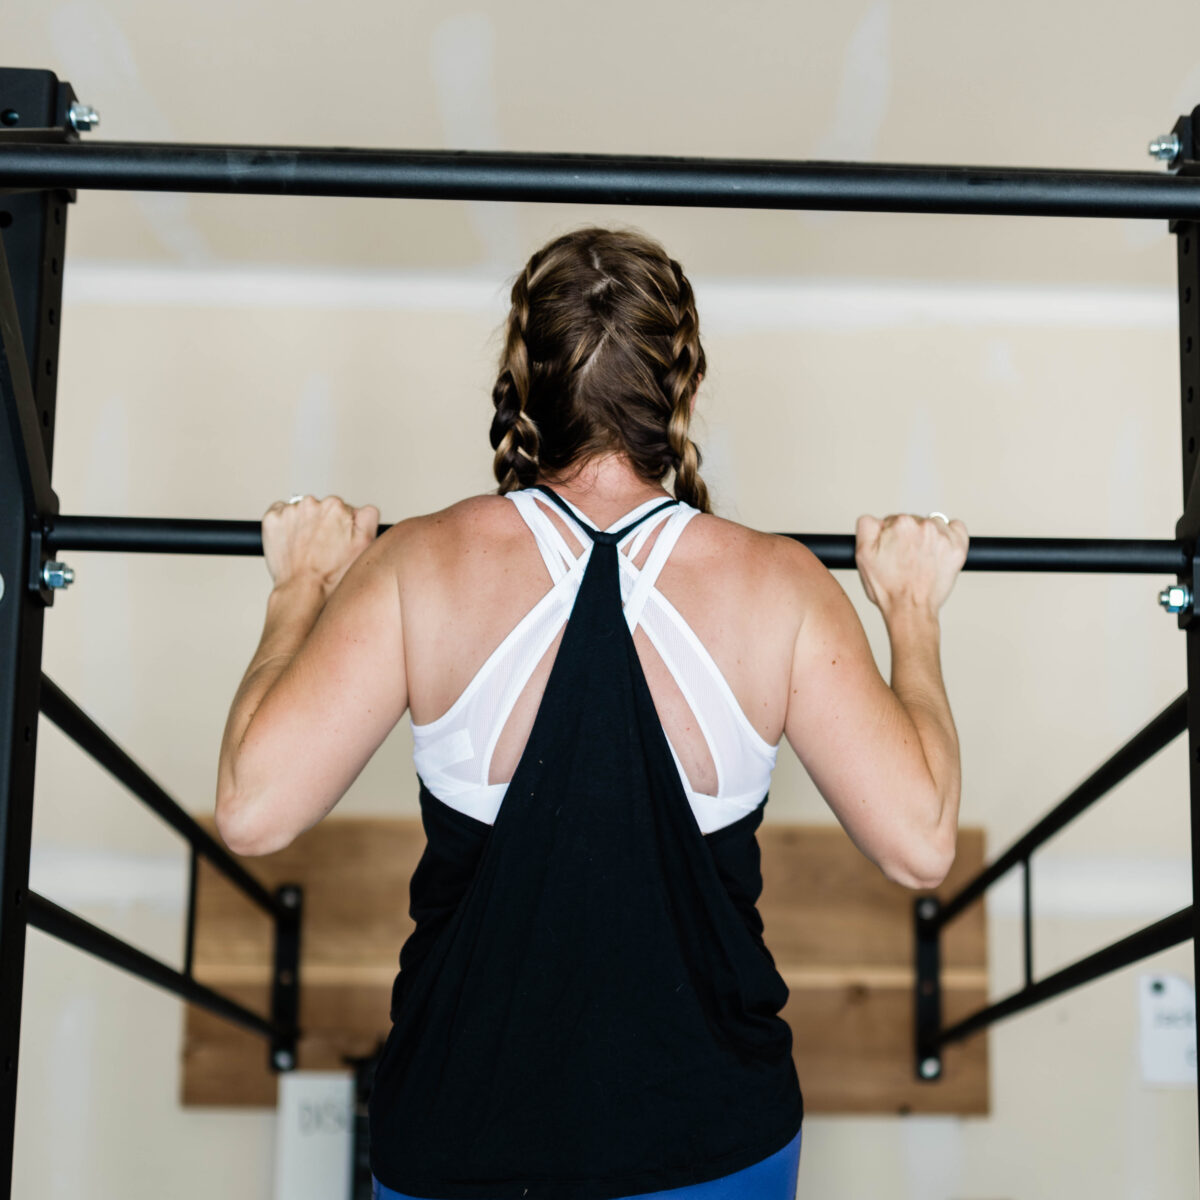 Workout wear from Fabletics